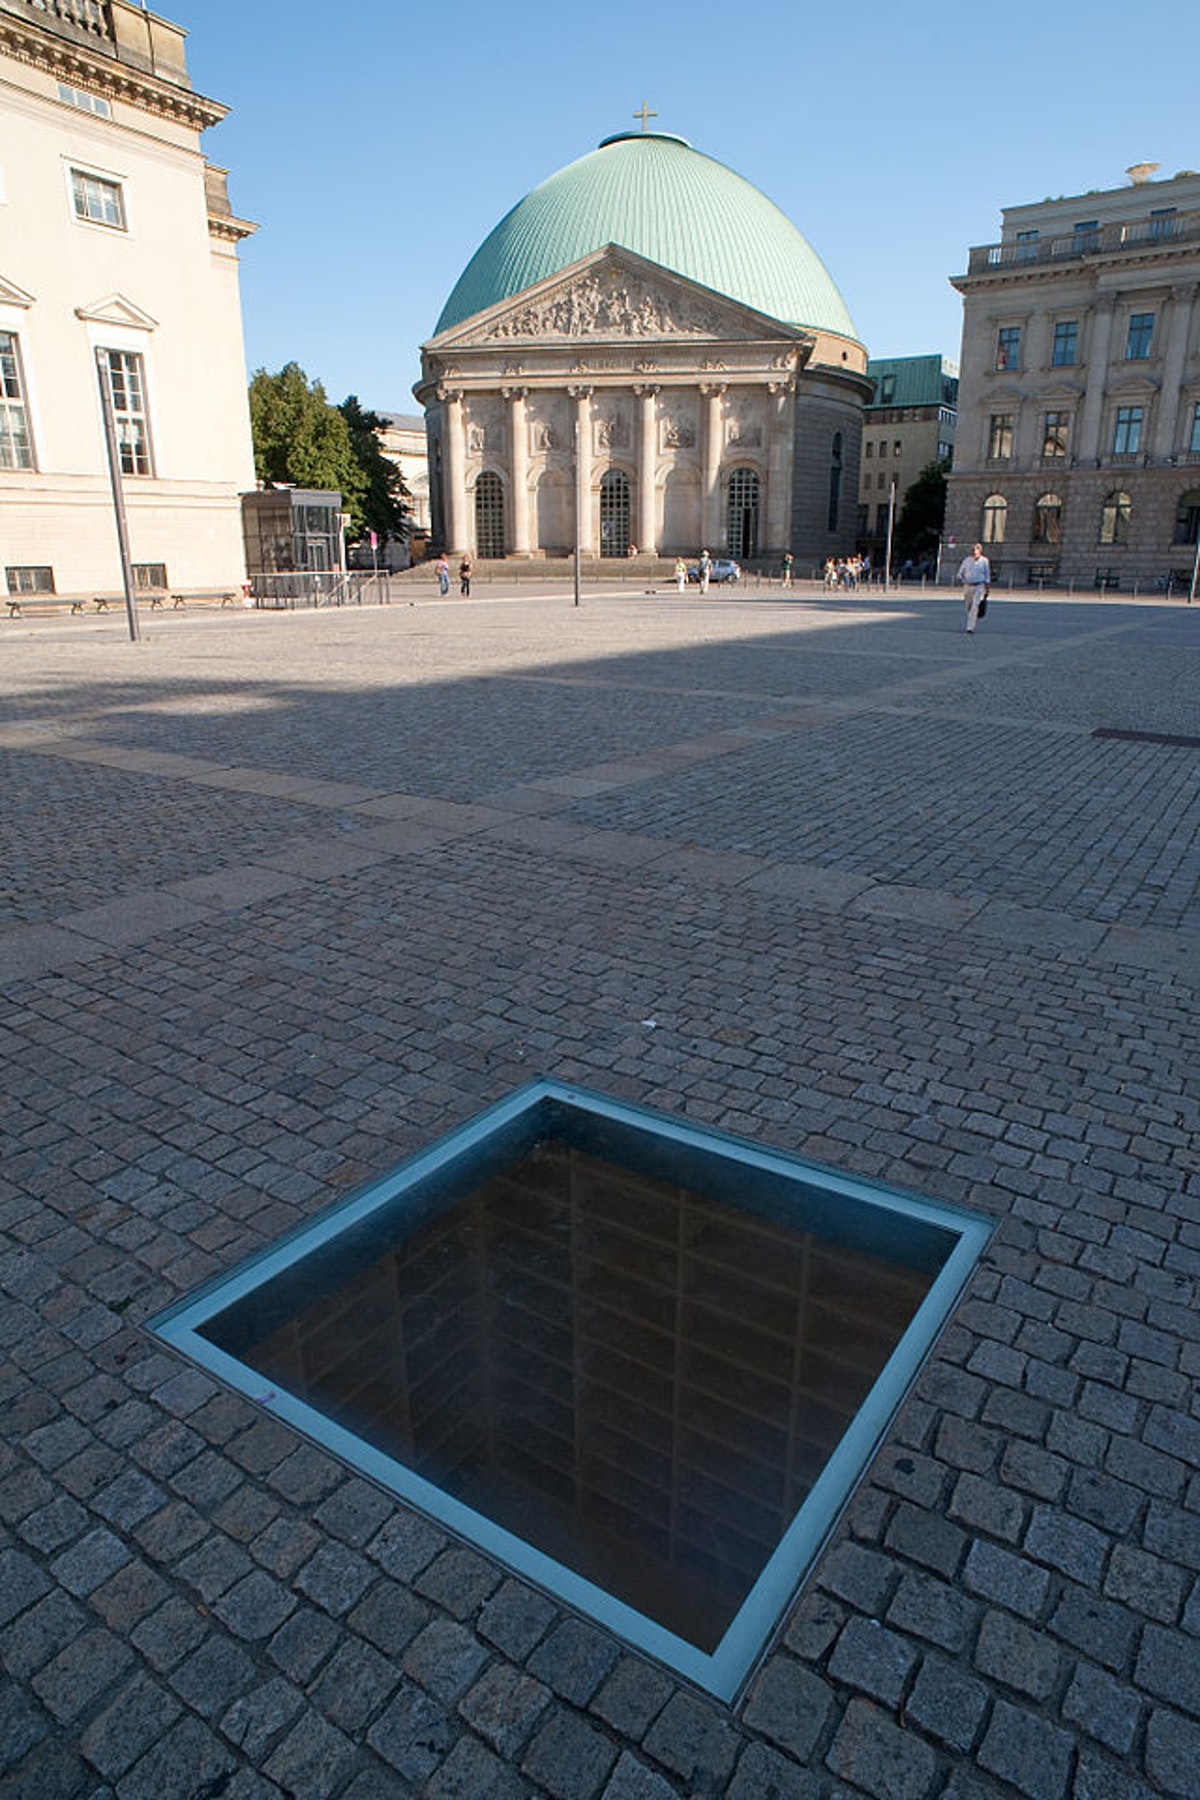 Book Burning Memorial on Bebelplatz